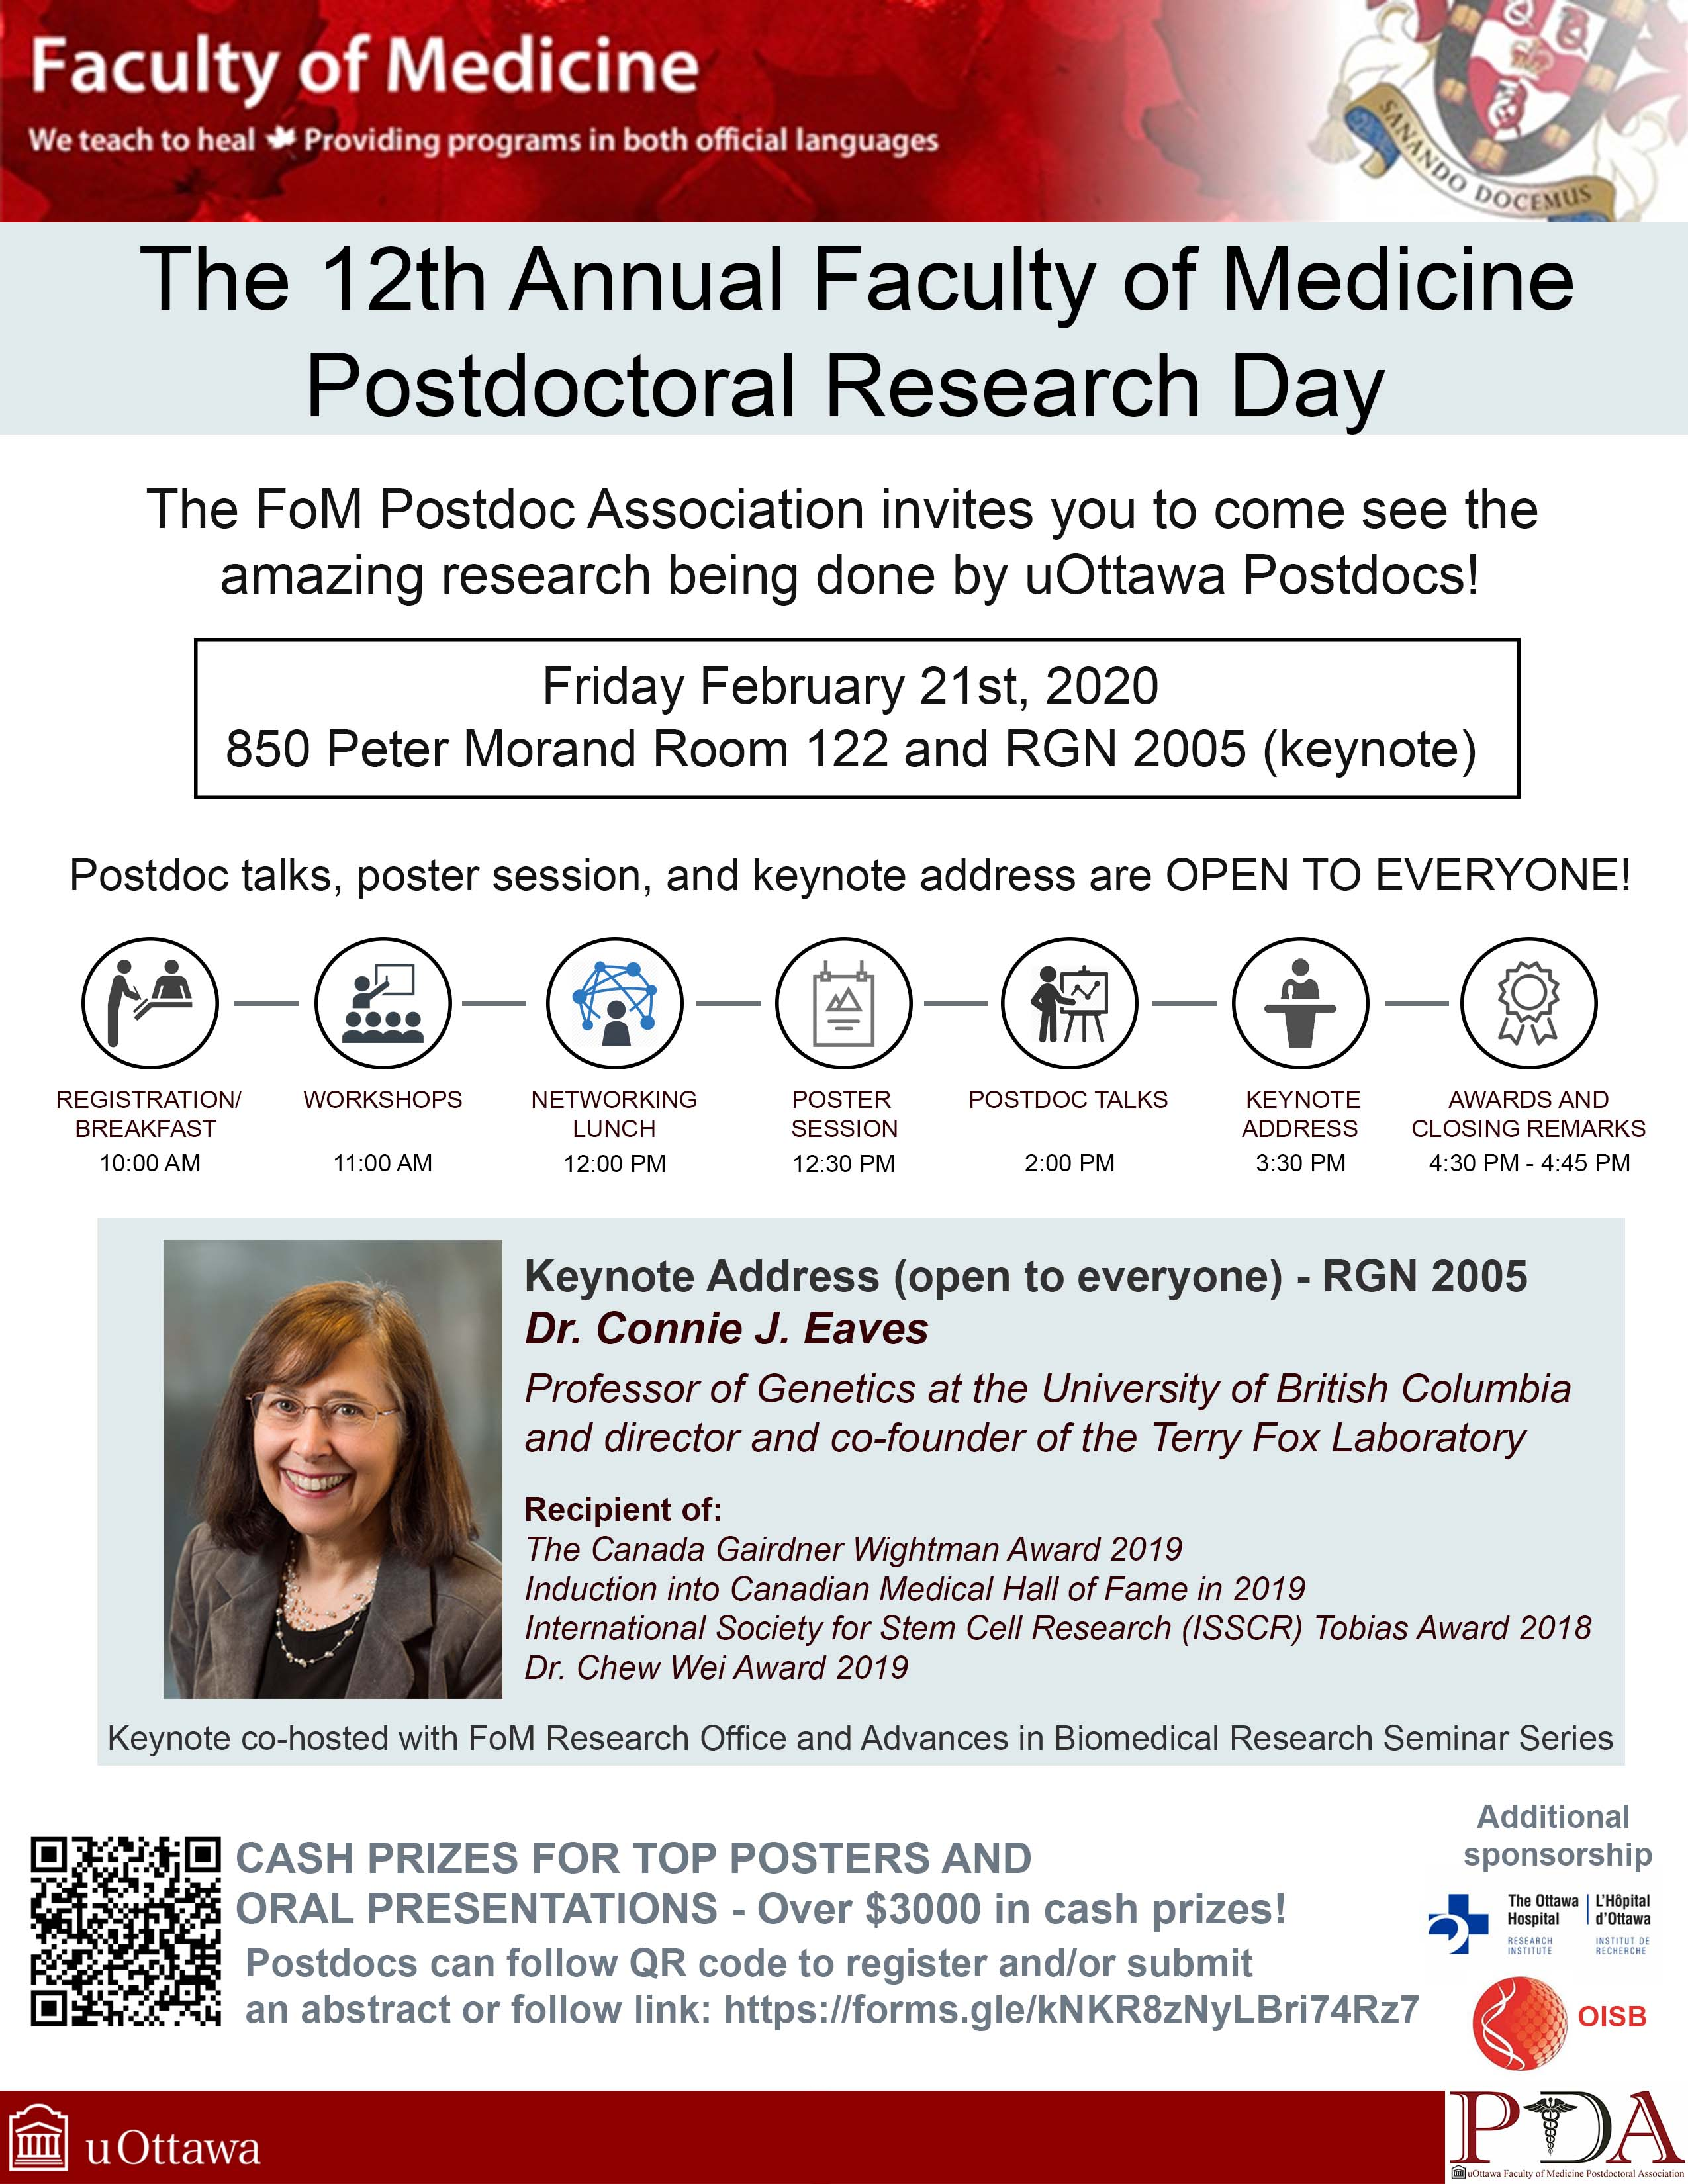 The 12th Annual Postdoctoral Research Day on February 21st